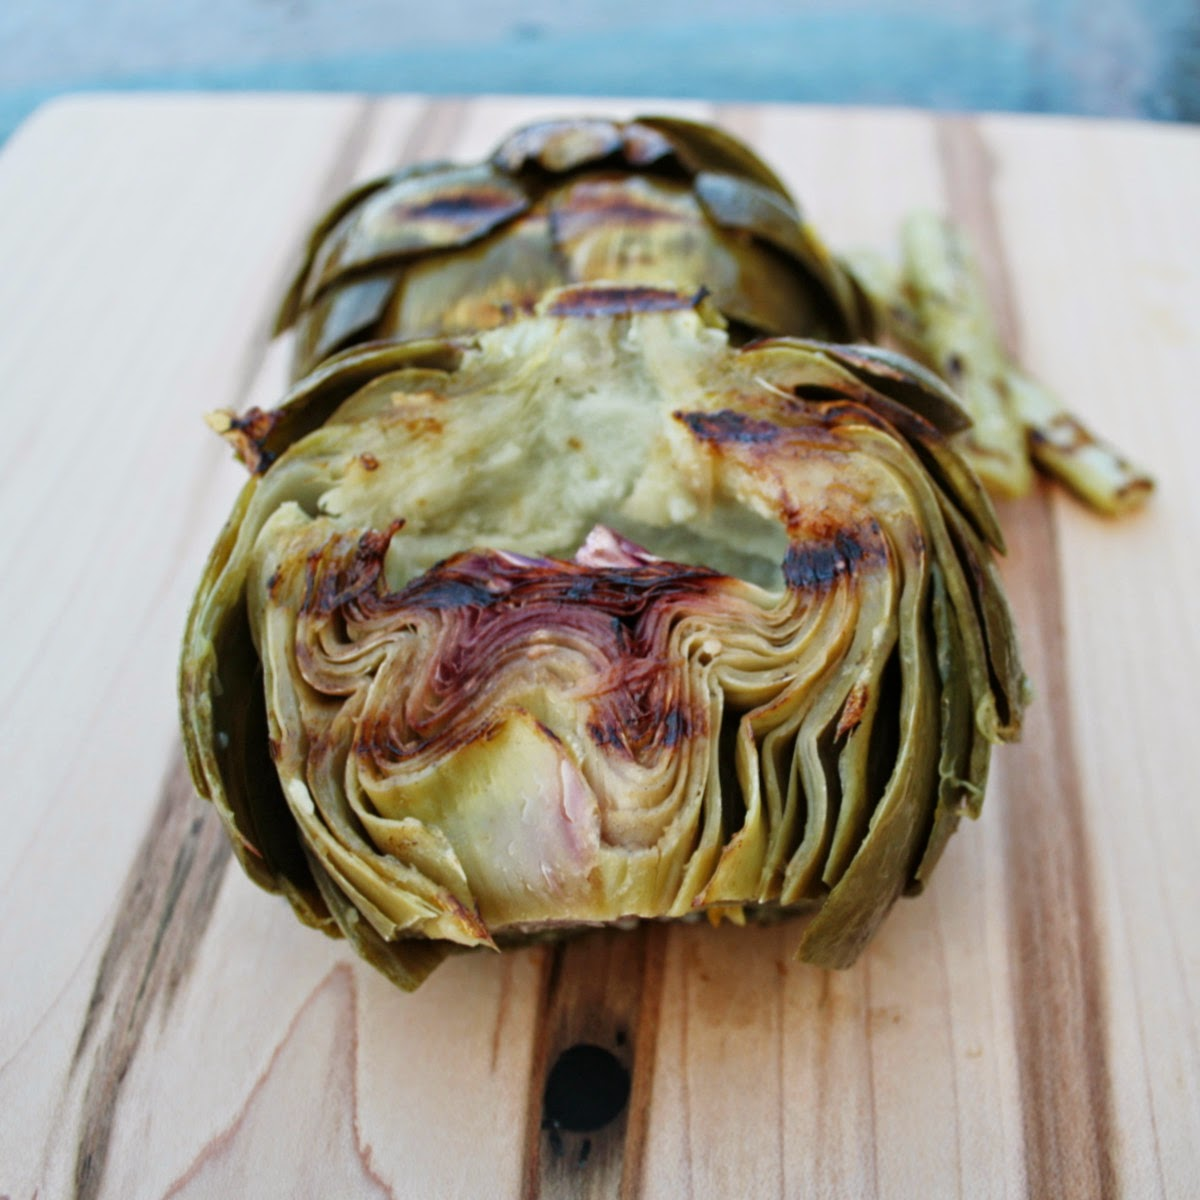 Grilled artichoke with a hint of lemon, ginger and garlic